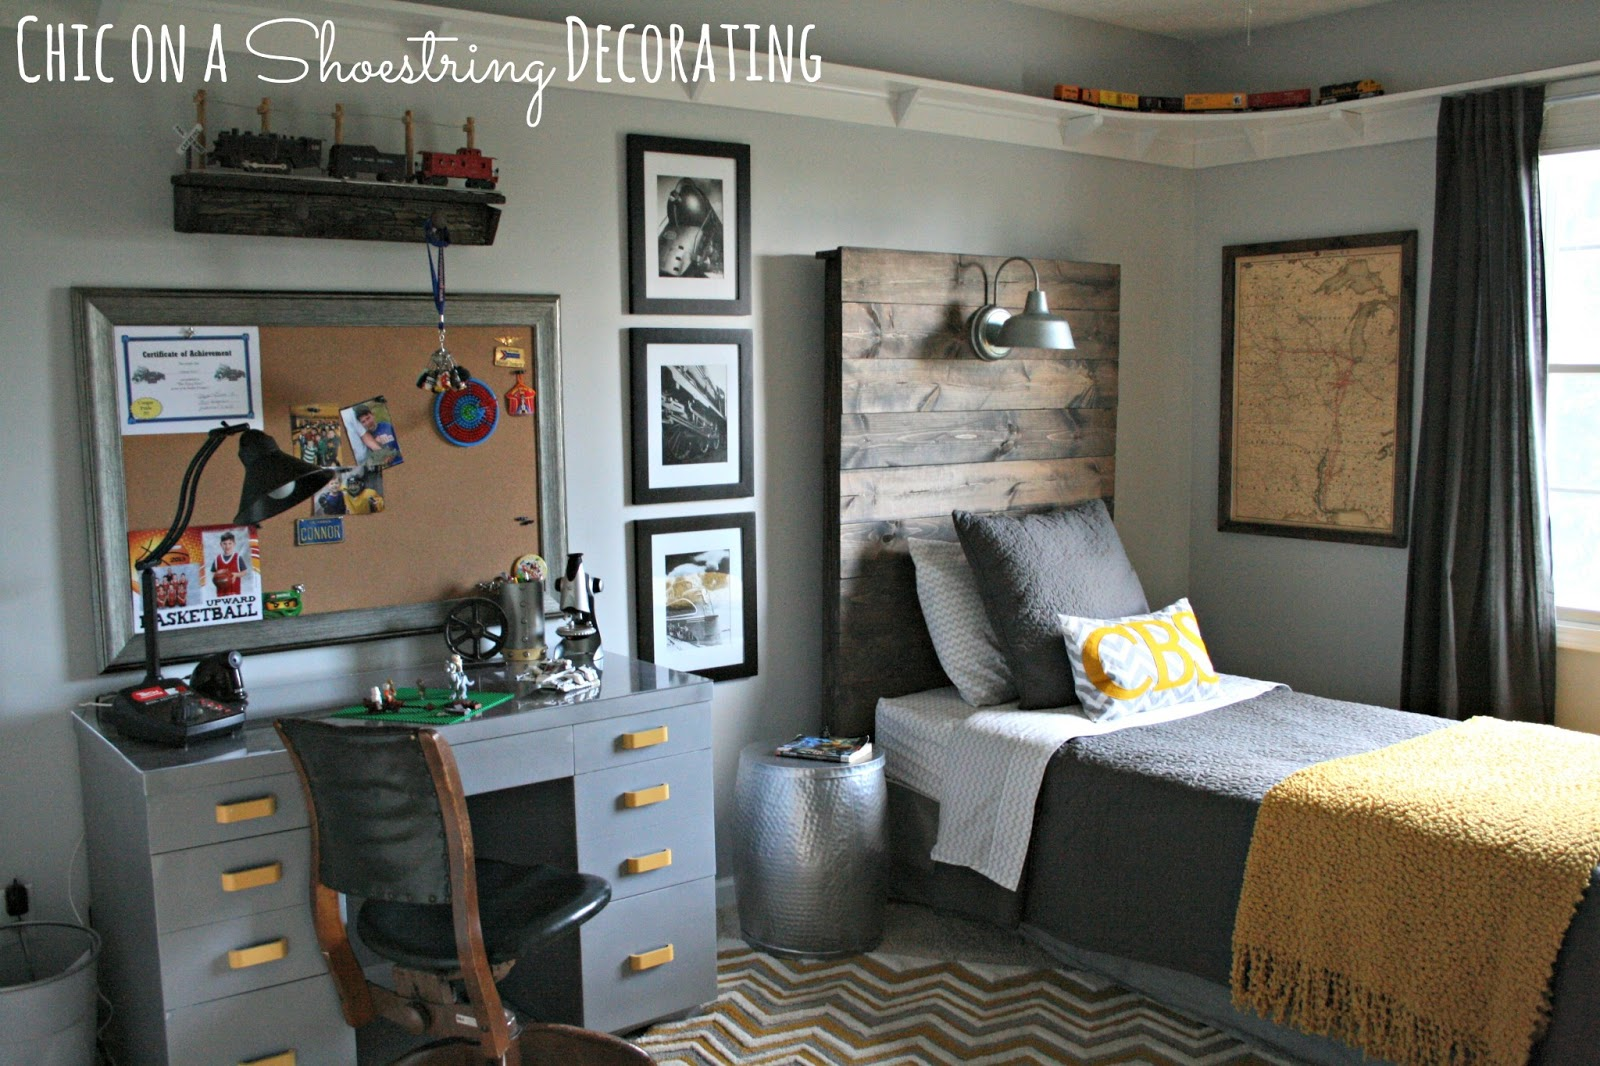 Chic on a Shoestring Decorating: Bigger Boy Room Reveal on Teenage Boy Room  id=18242